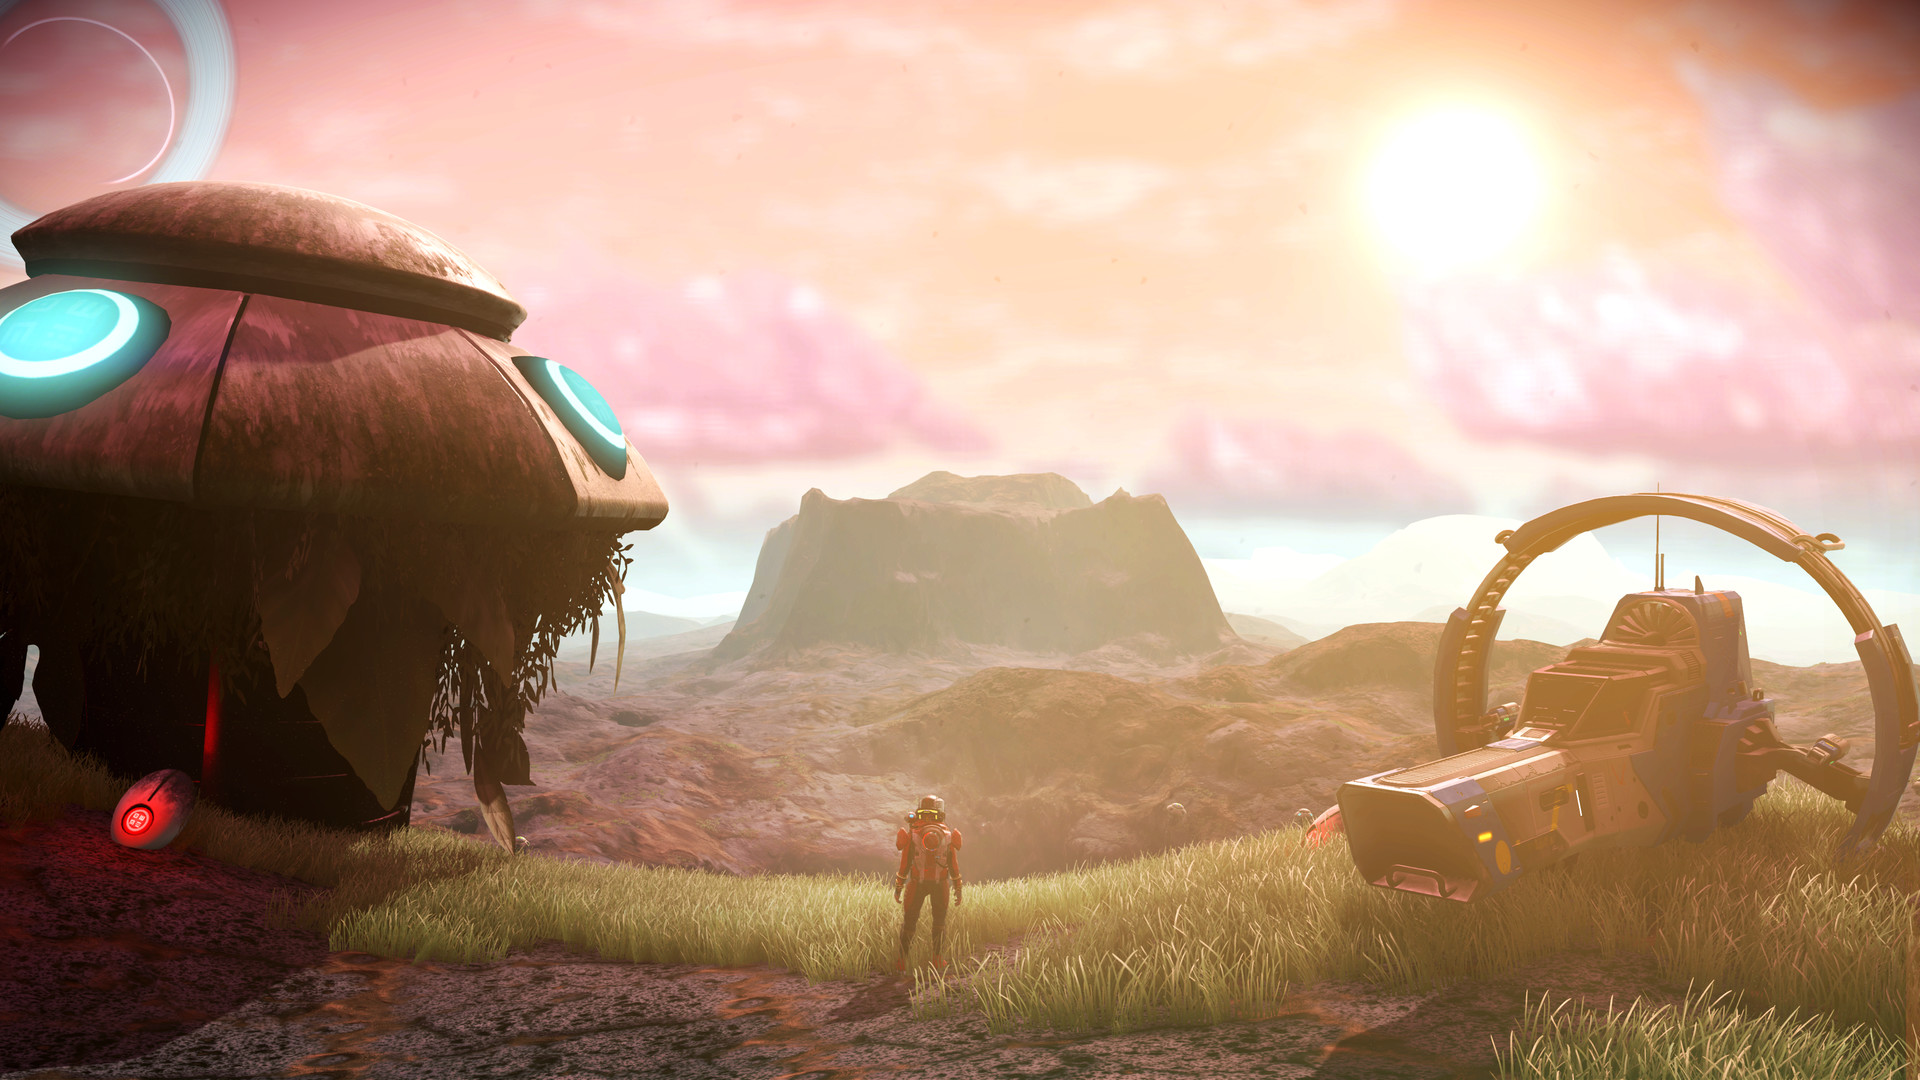 If you haven't played No Man's Sky yet, now's the time